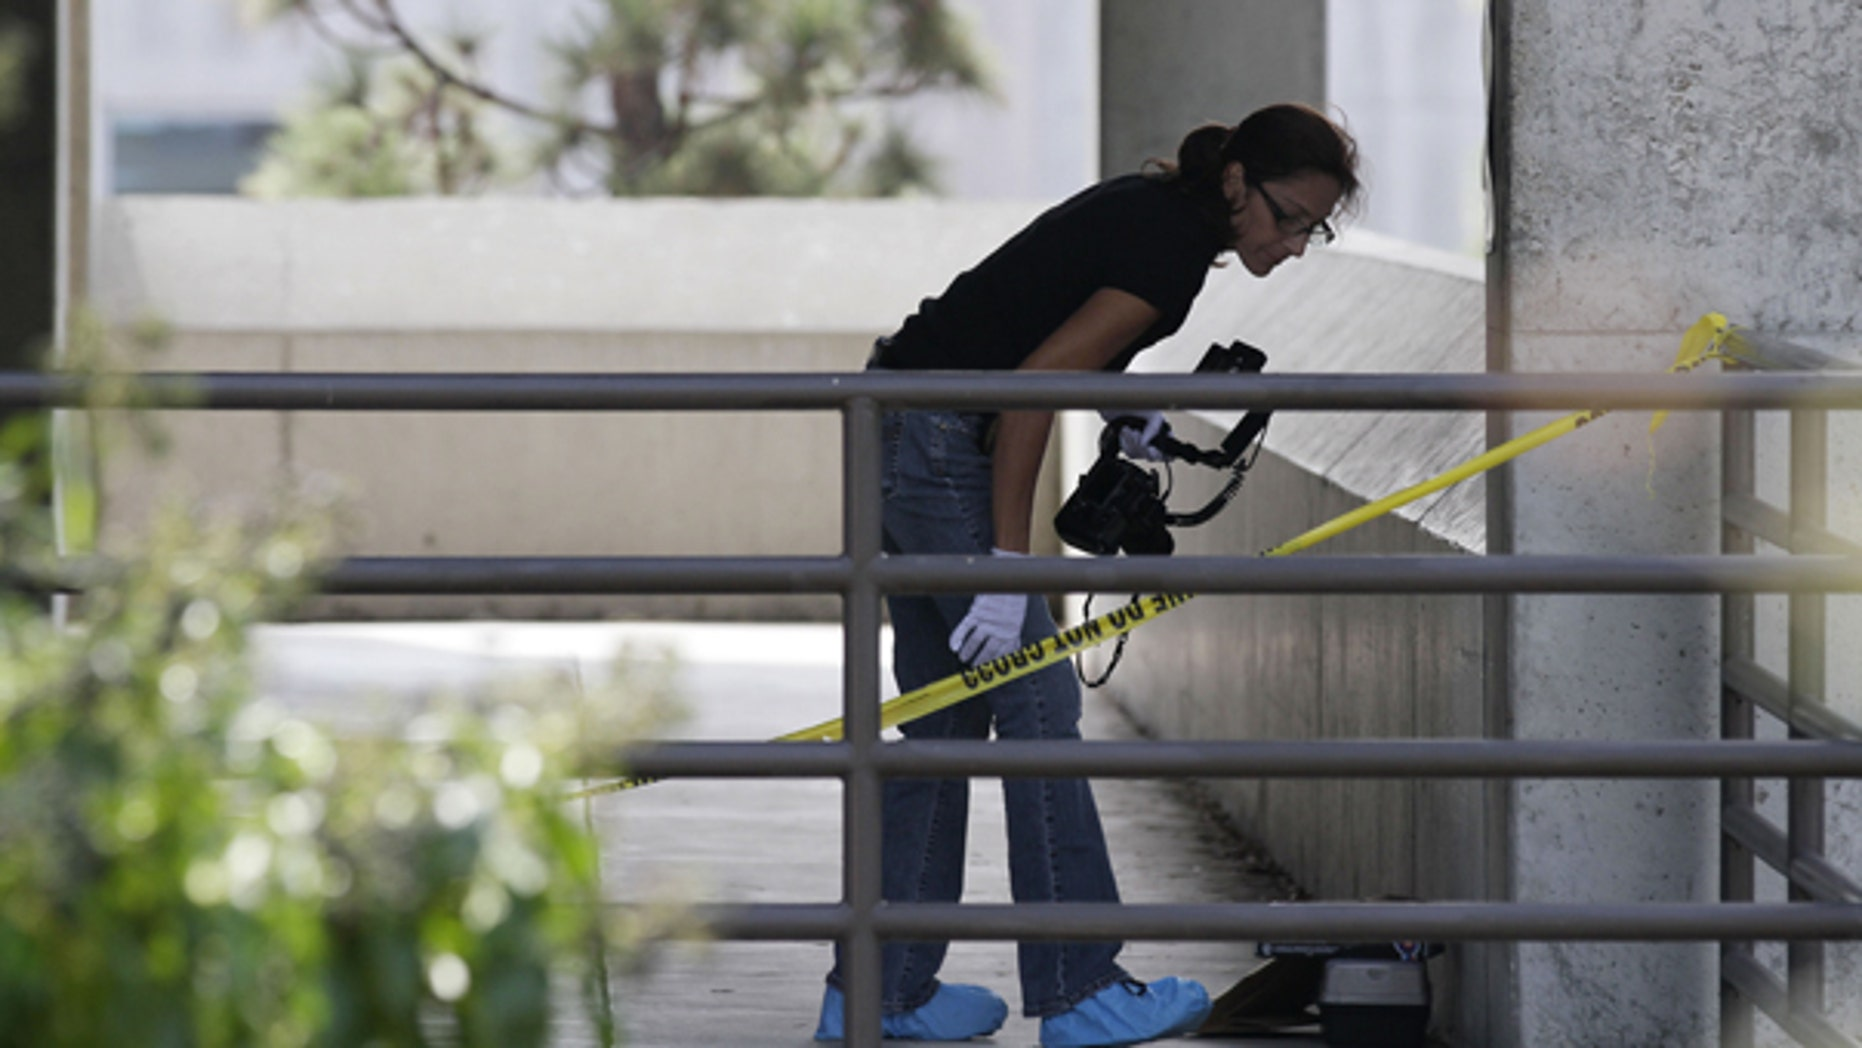 Oct. 13: A police official works at the scene where the body of a woman was found in a bathroom Tuesday night on the campus of San Diego City College.